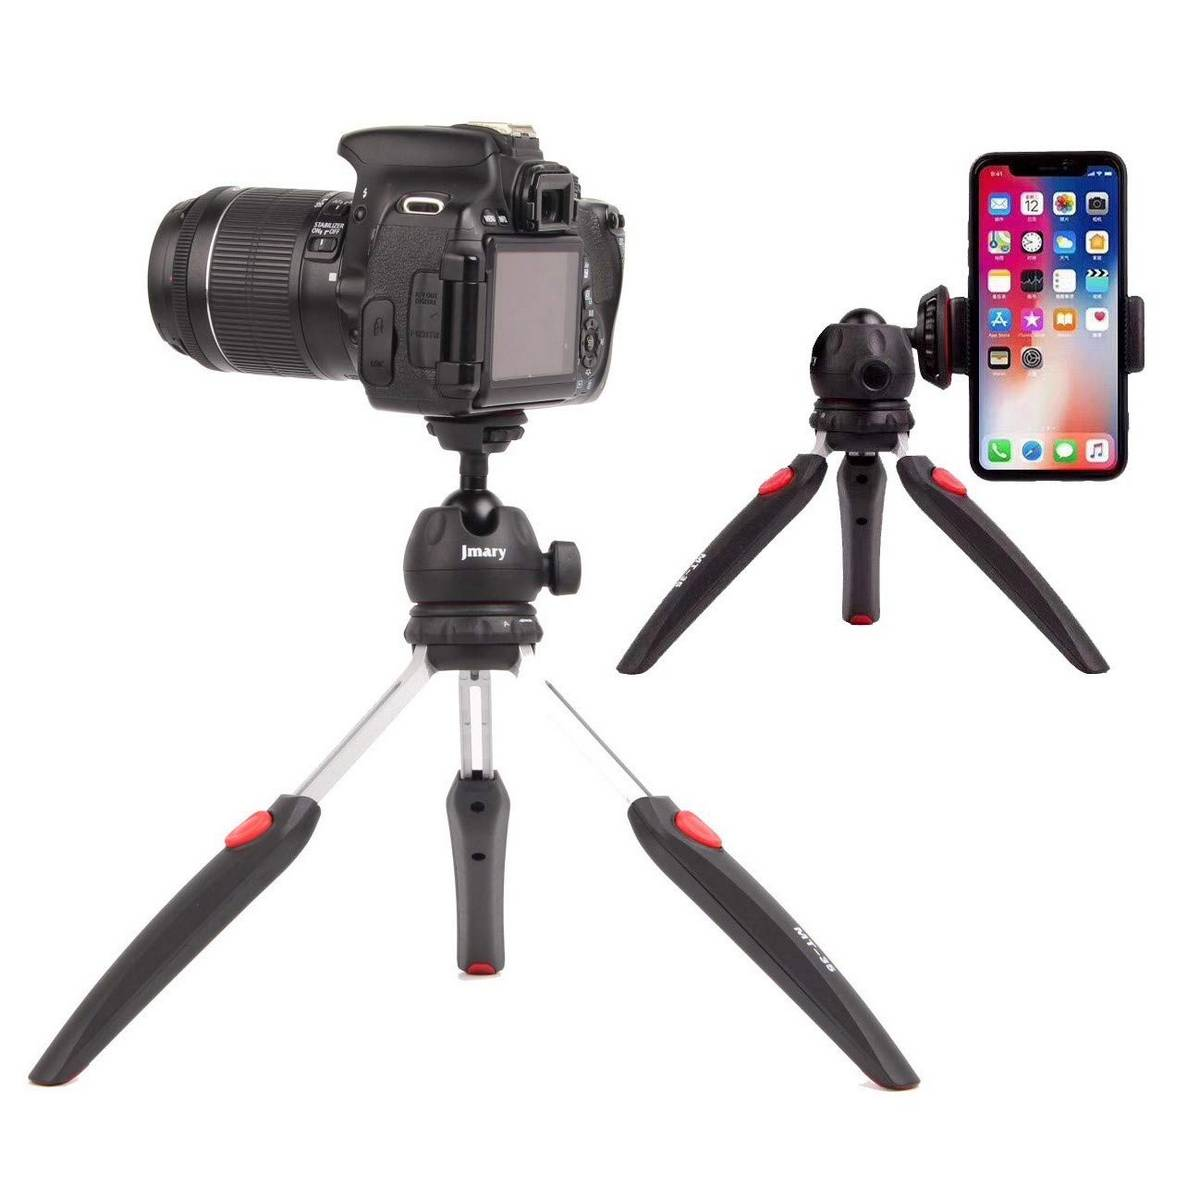 JMARY MT-35 - Table Top Mini Portable Fold-able Extendable Tripod Stand for Mobile Phones and DSLR & Digital Cameras - Coming with Universal Mobile Phone Holder (MT-35-BLK)